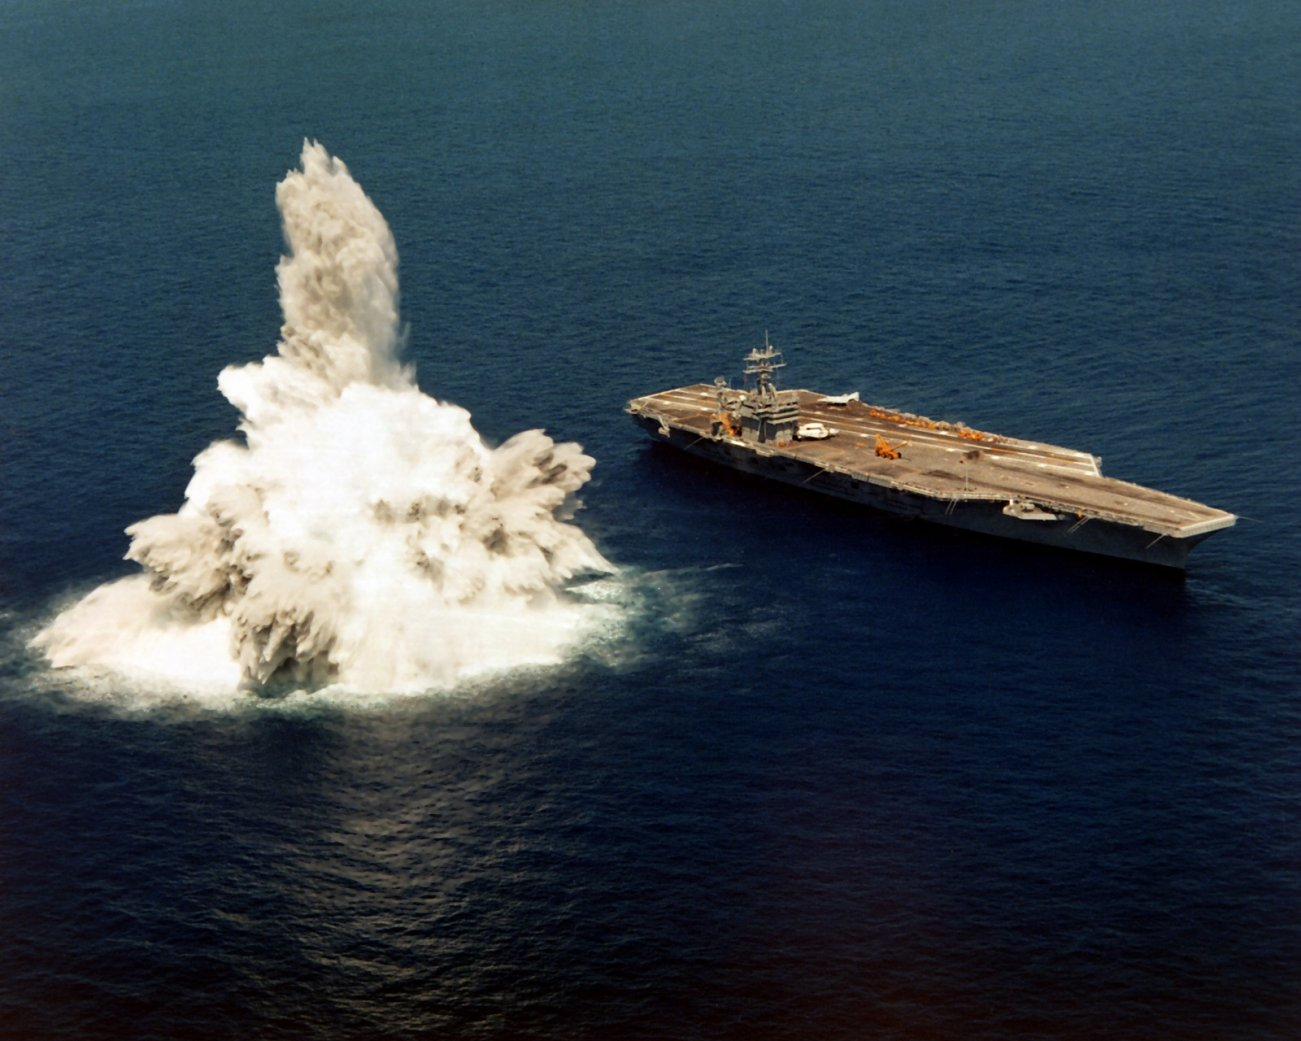 Shock Trials: Why the U.S. Navy Detonates Massive Bombs Near Aircraft Carriers